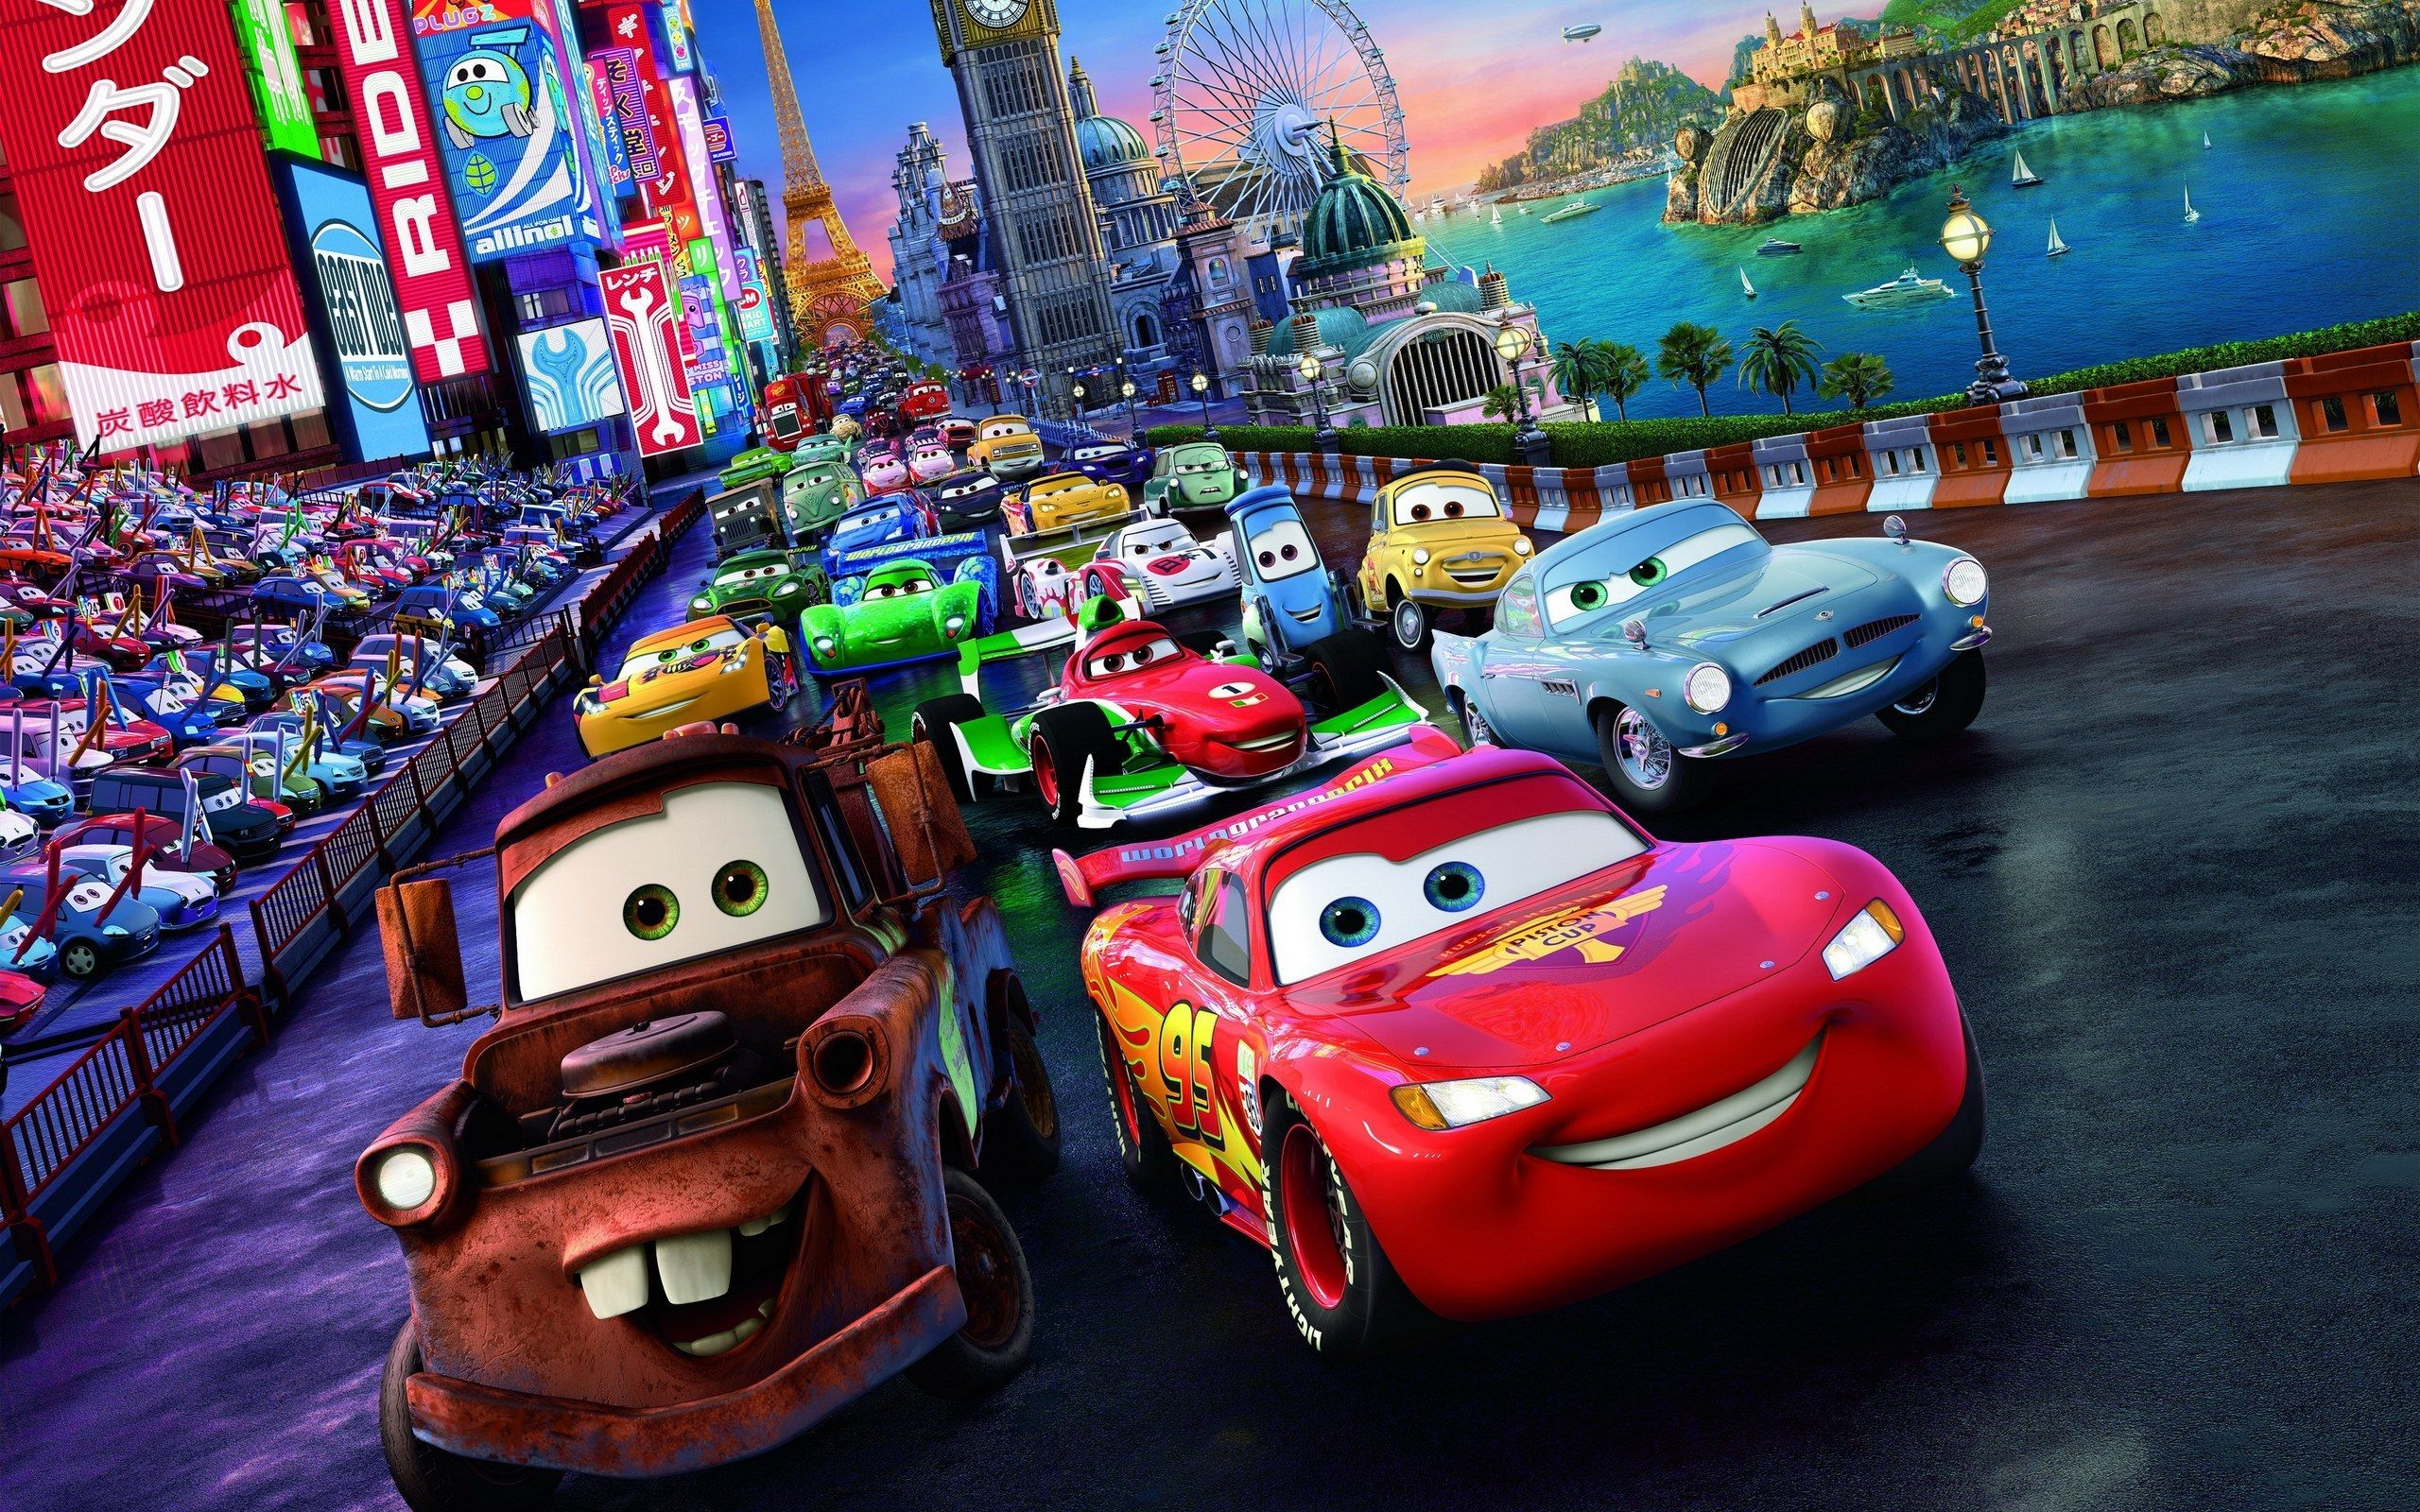 Disney pixar cars wallpapers hd wallpaper cave - Disney cars wallpaper ...